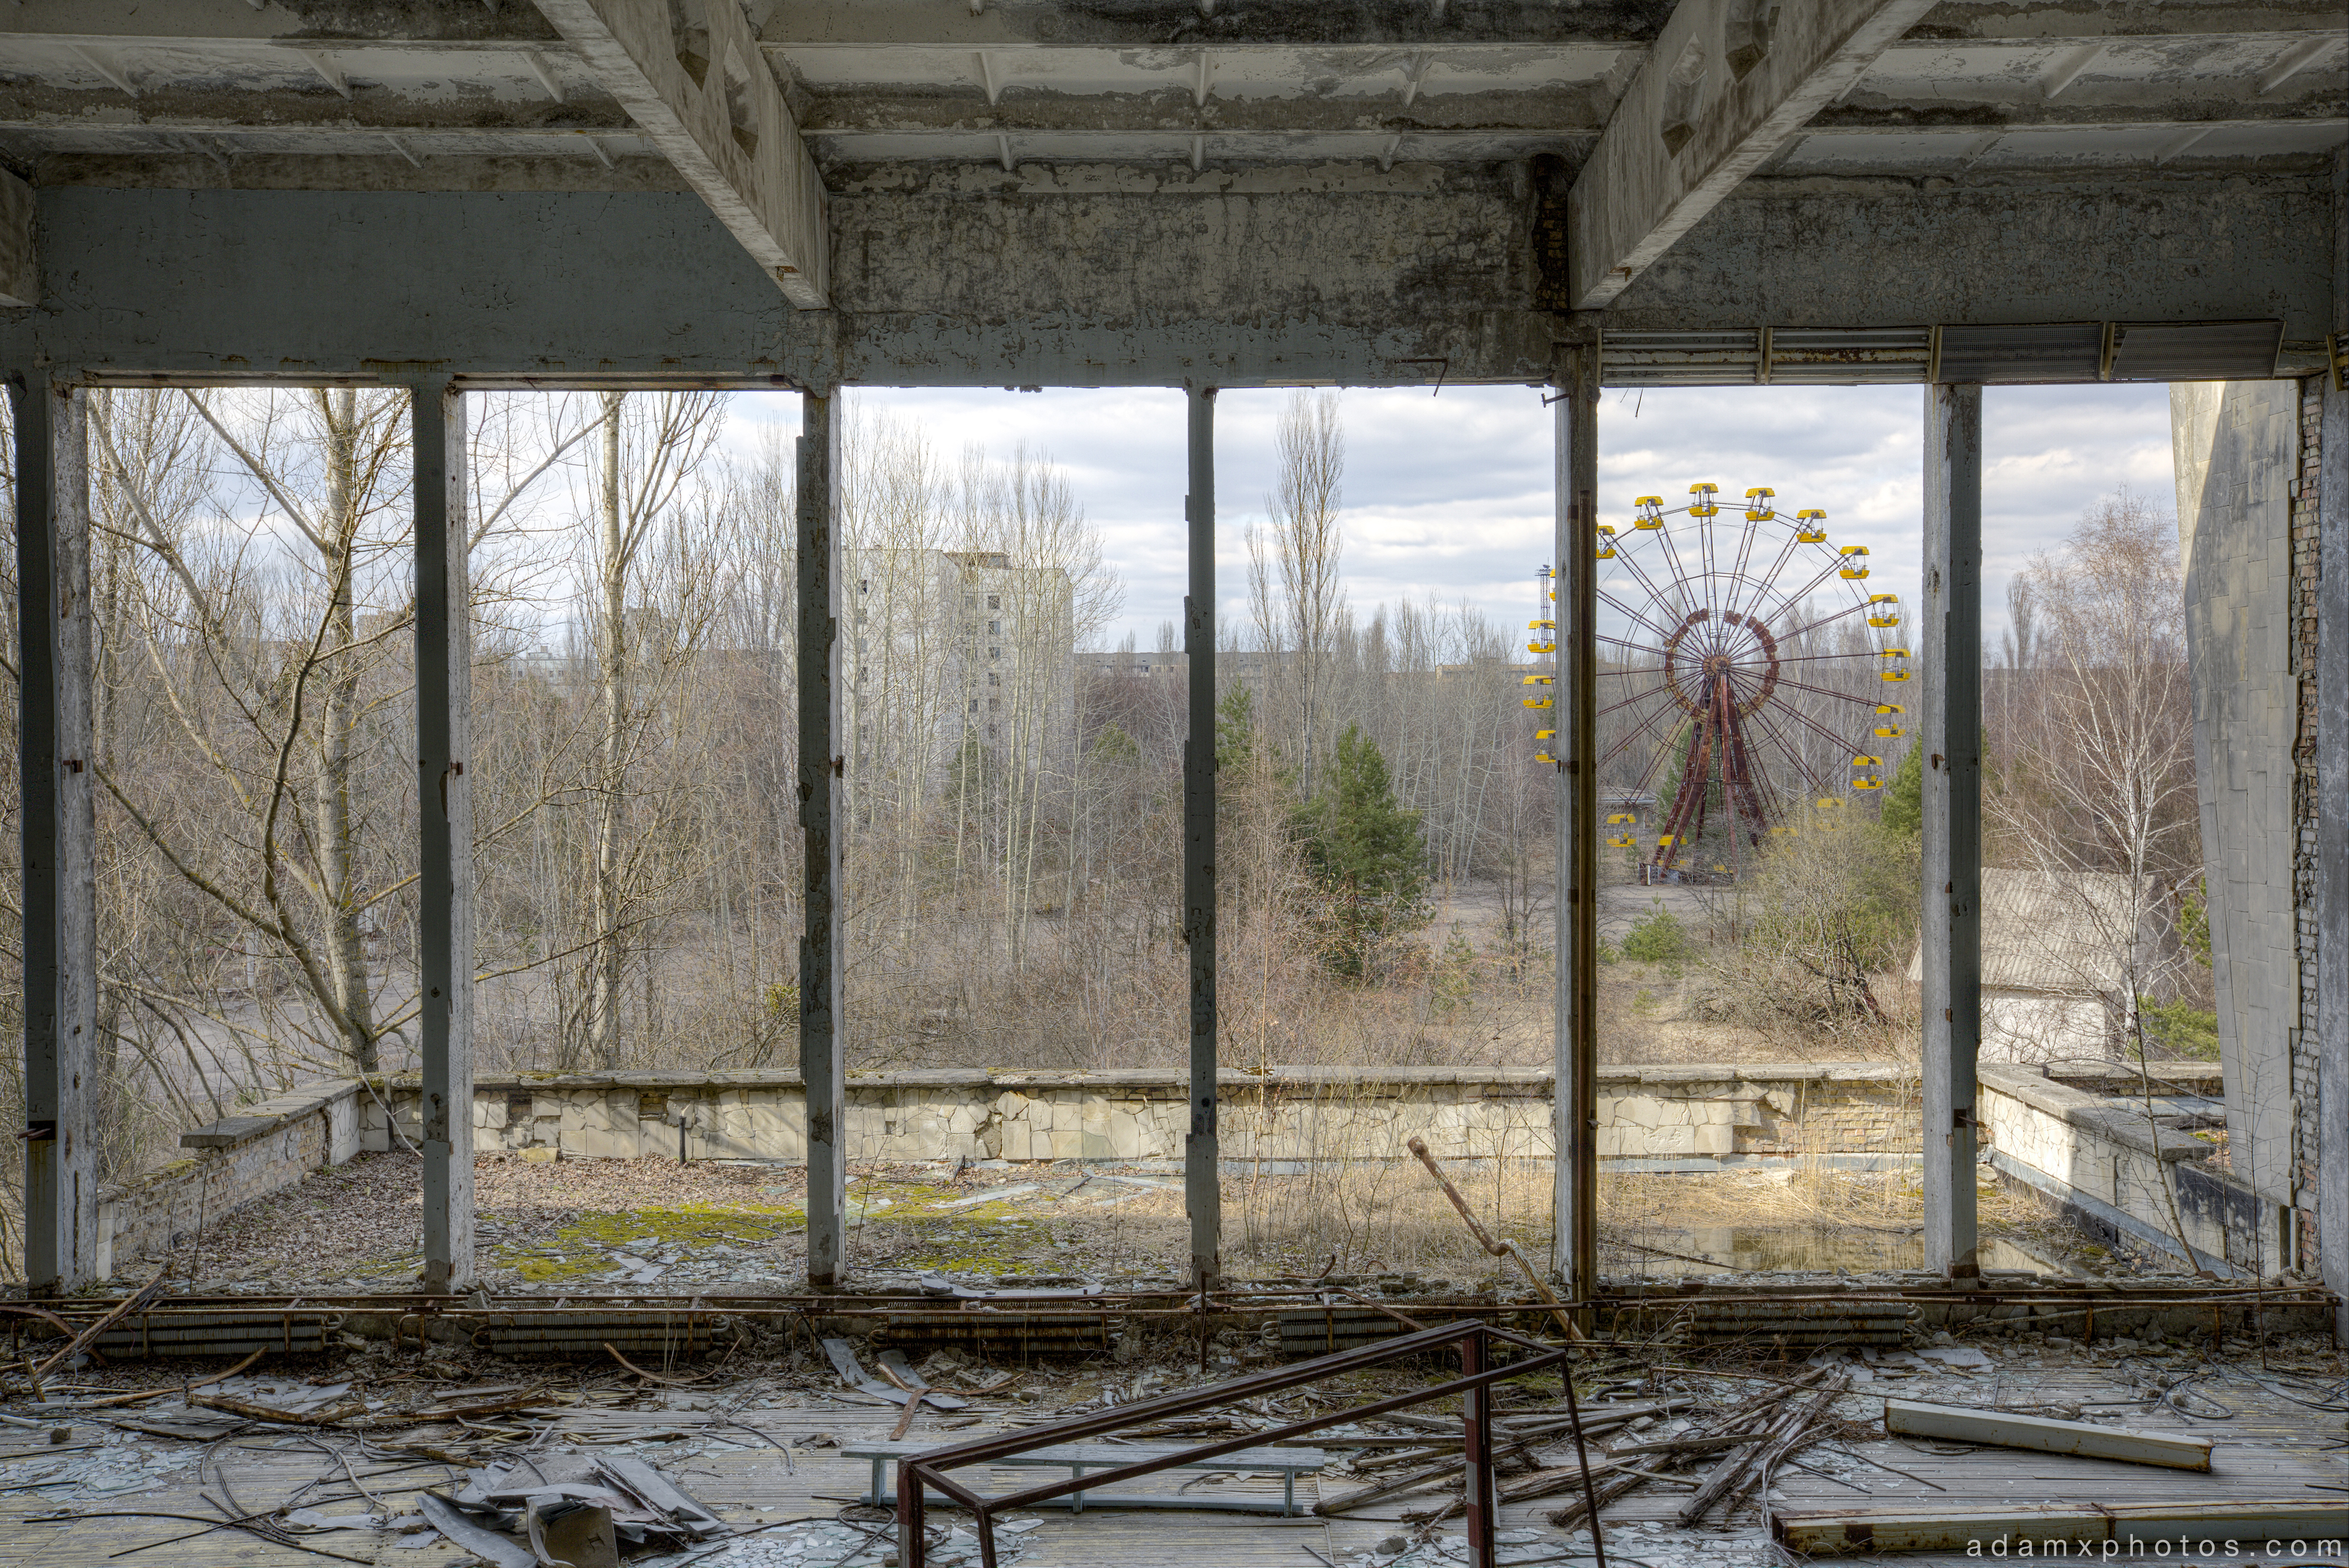 ferris wheel from gym gymnasium sports hall of palace of culture energetik Chernobyl Pripyat Urbex Adam X Urban Exploration 2015 Abandoned decay lost forgotten derelict